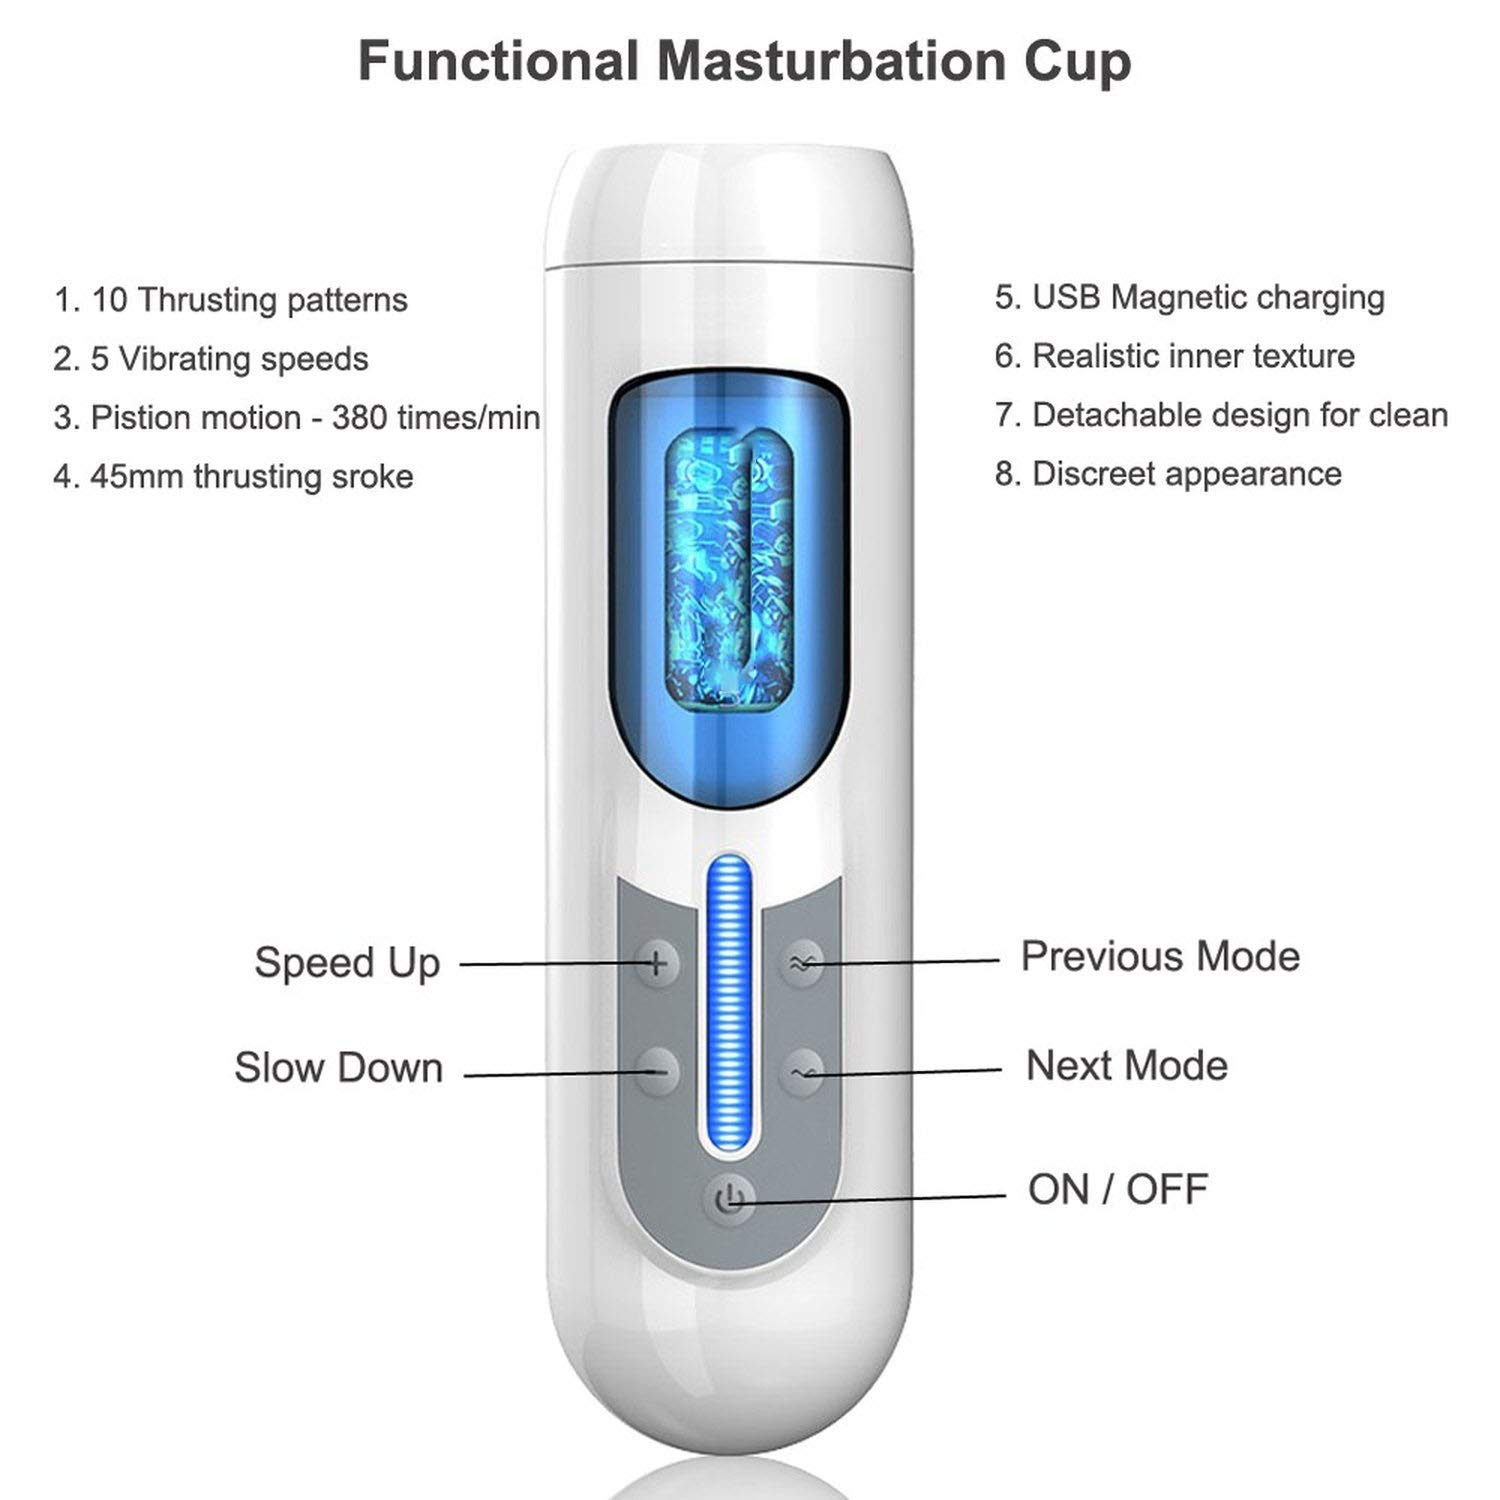 Vibrator Masturbator Men USB Charging Automatic Masturbation Cup Sucker Silicone Real Pussy Vagina Adult Sex-Toys for Man,Type B Carrying USEXMTY S-Tshirt by USEXMTY S-Tshirt (Image #2)